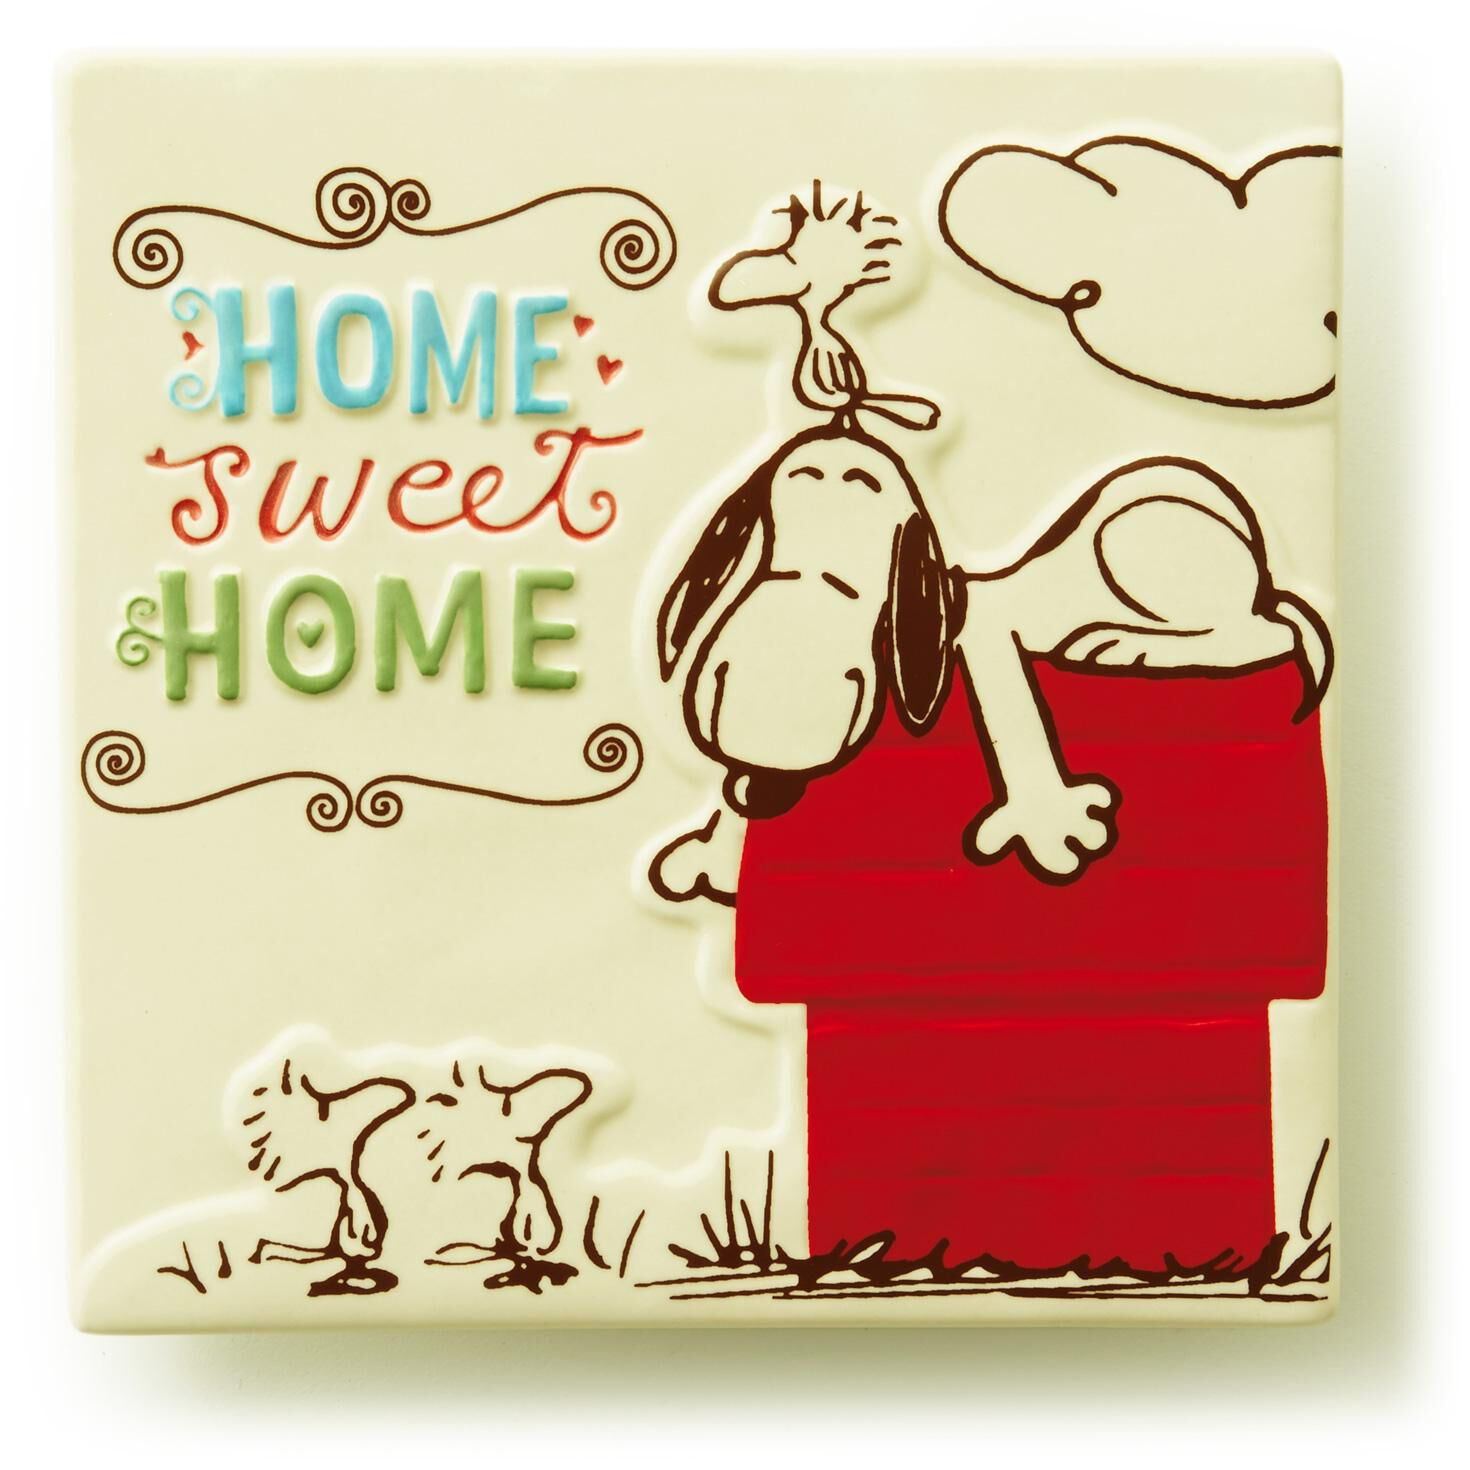 Home Sweet Home Ceramic Tile - Decorative Accessories ...